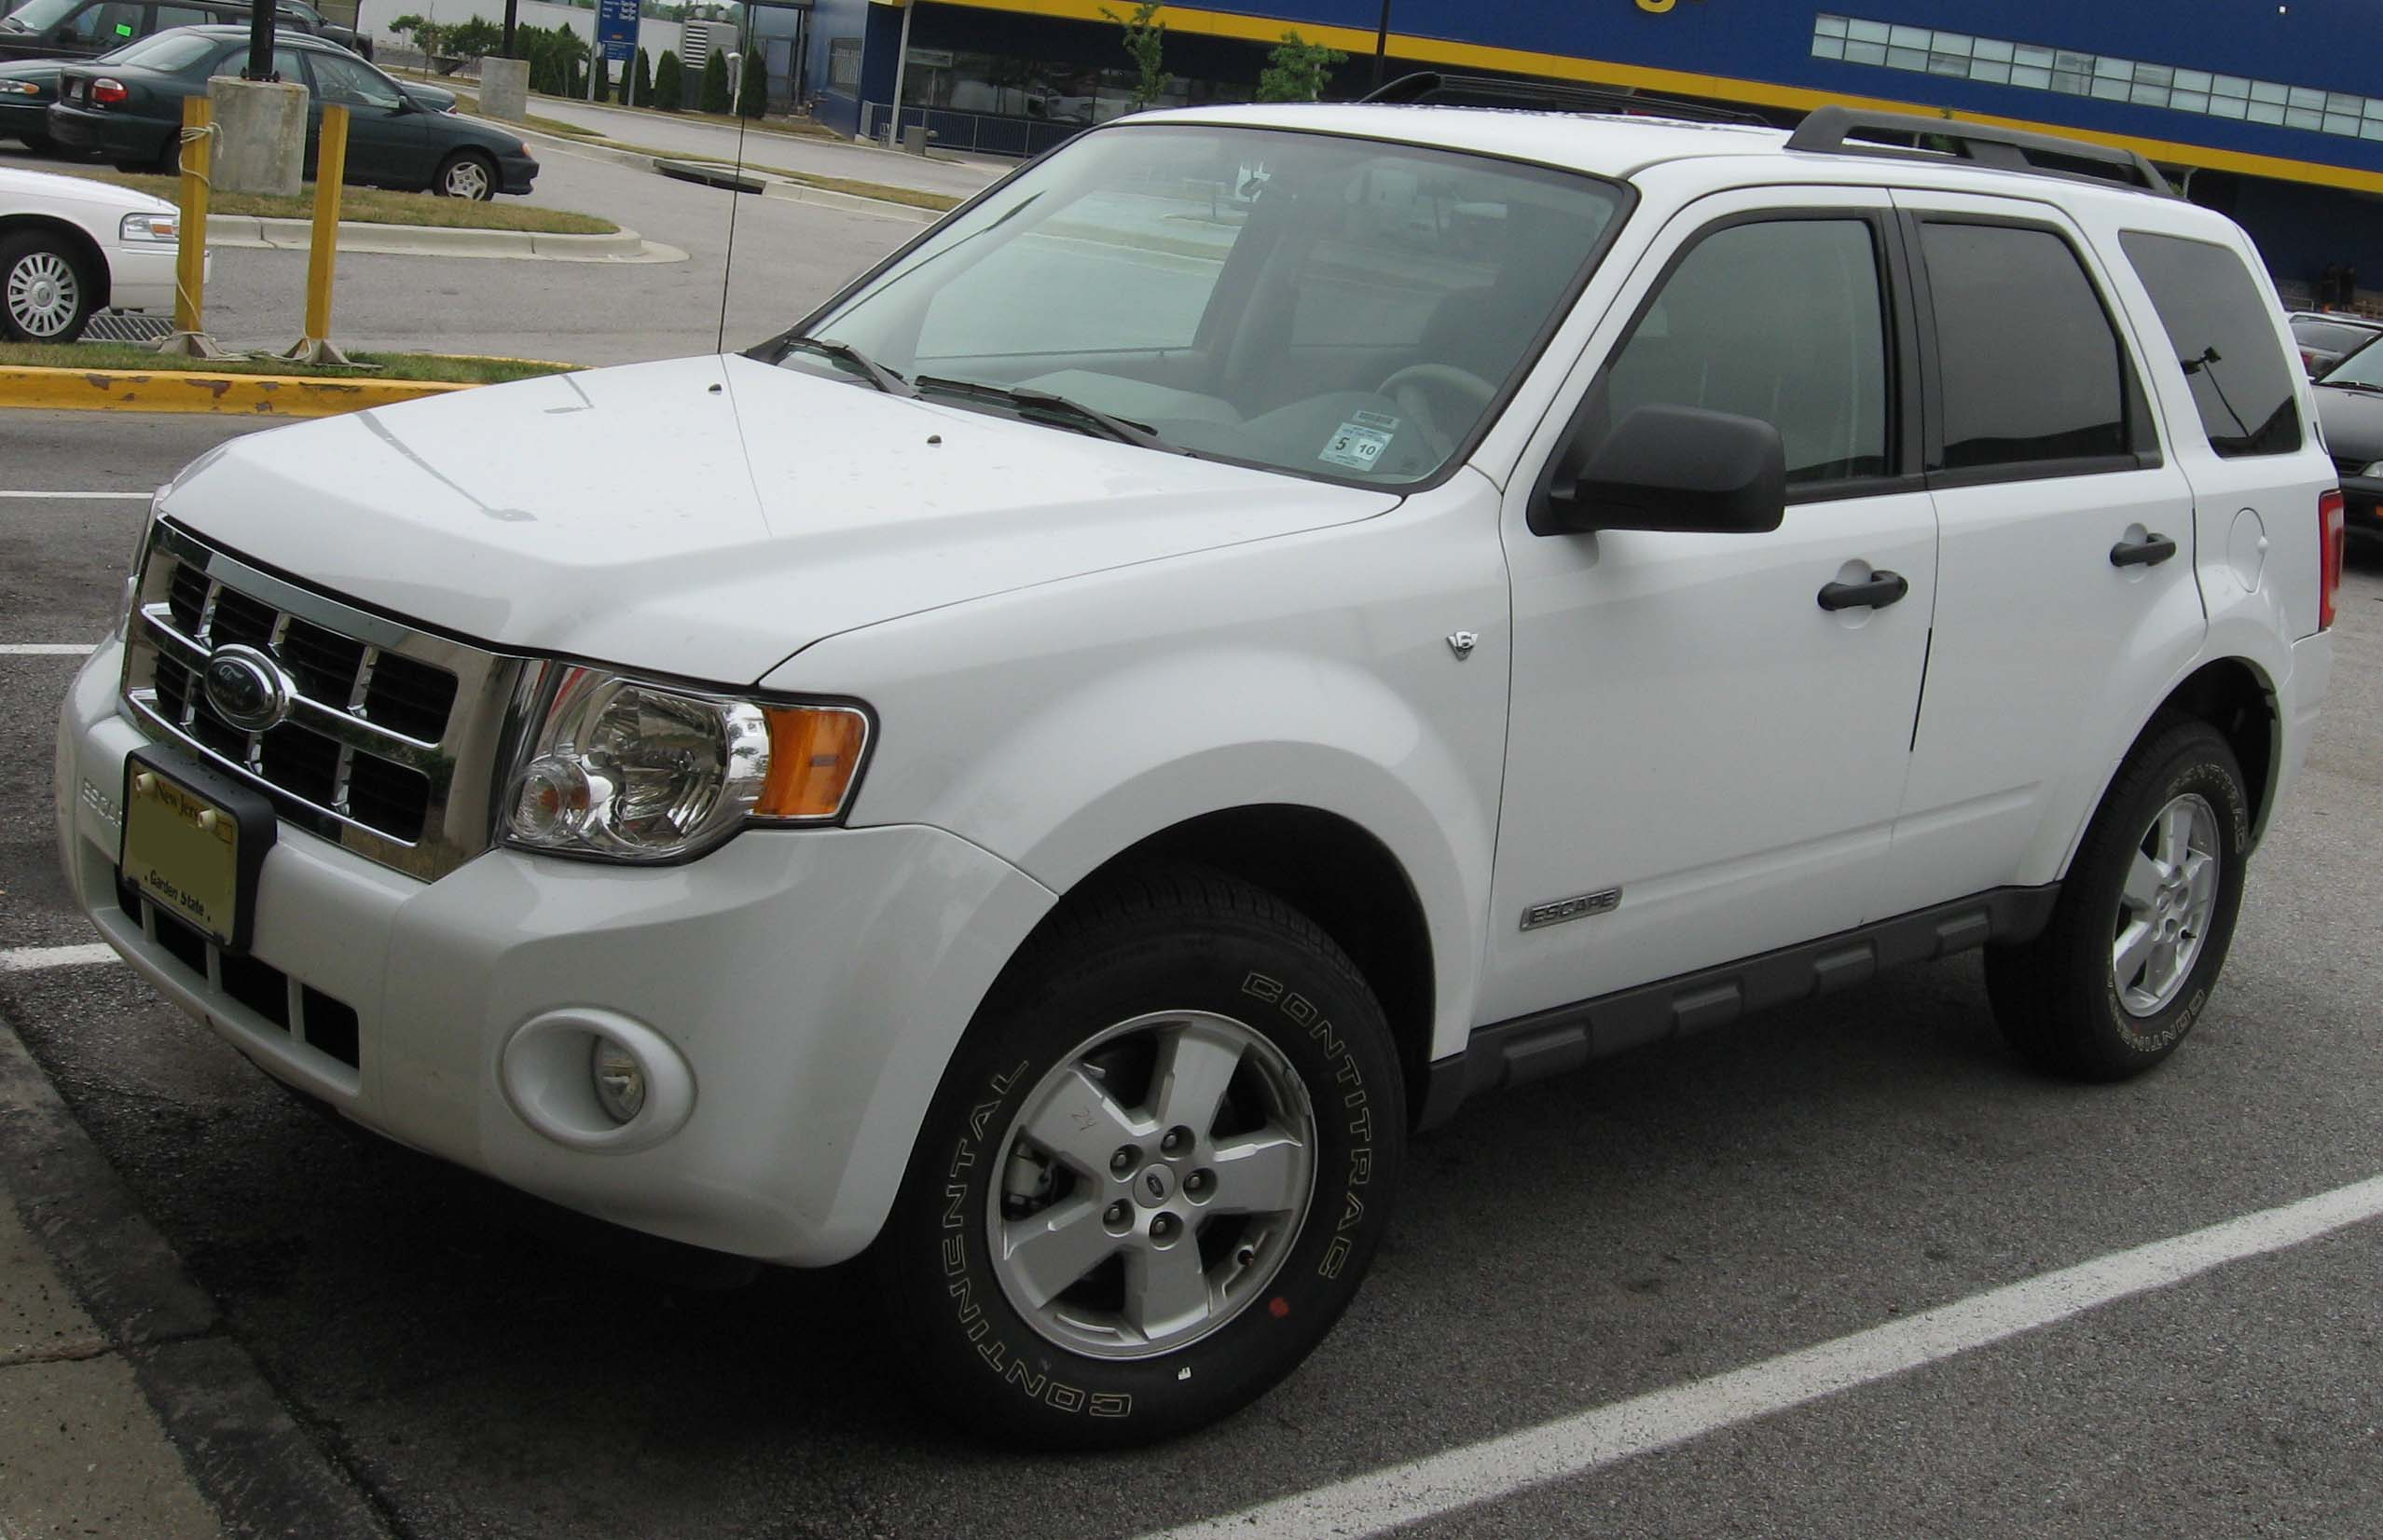 Are Ford Escapes Good Used Cars